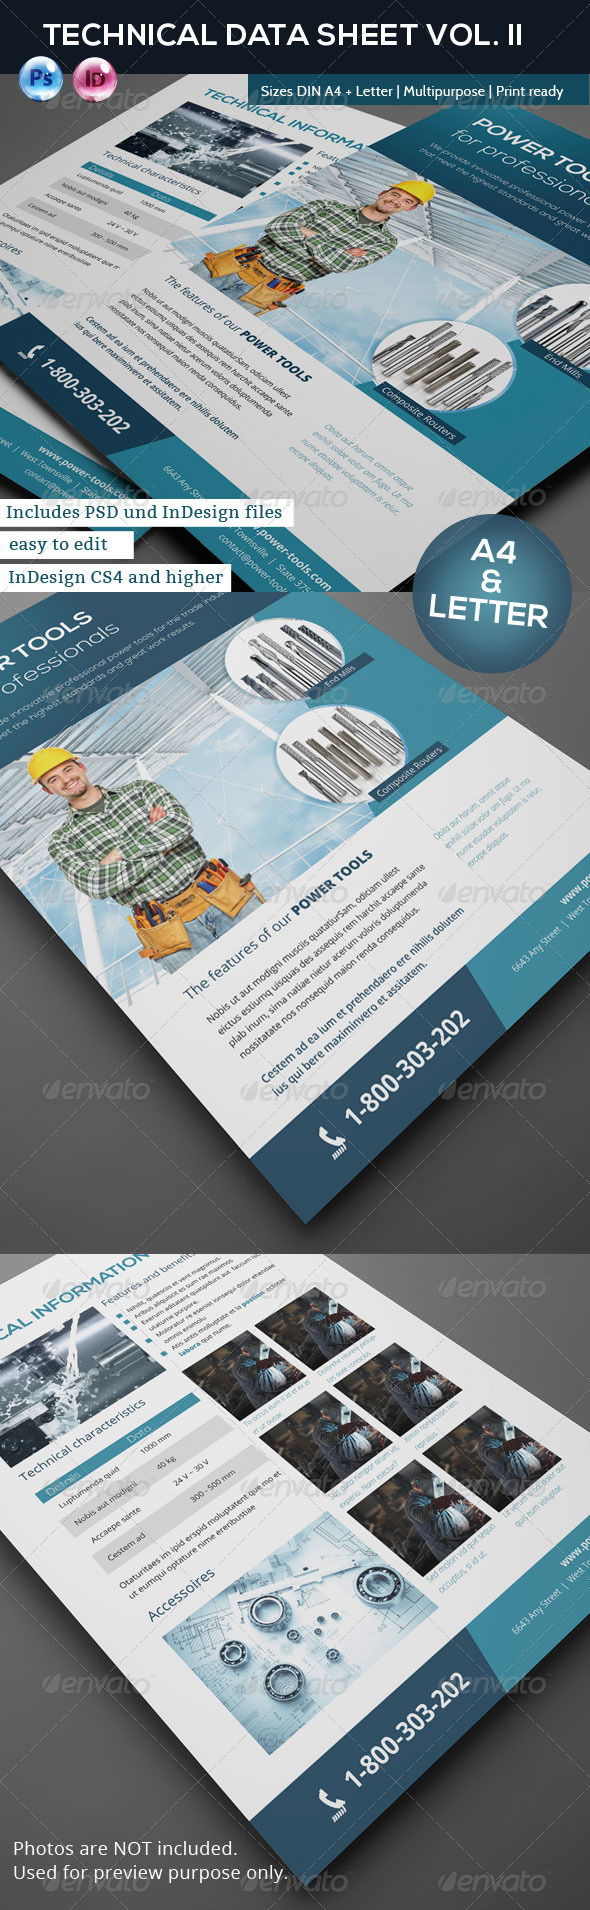 GraphicRiver Technical Data or Product Sheet Vol II 5838343